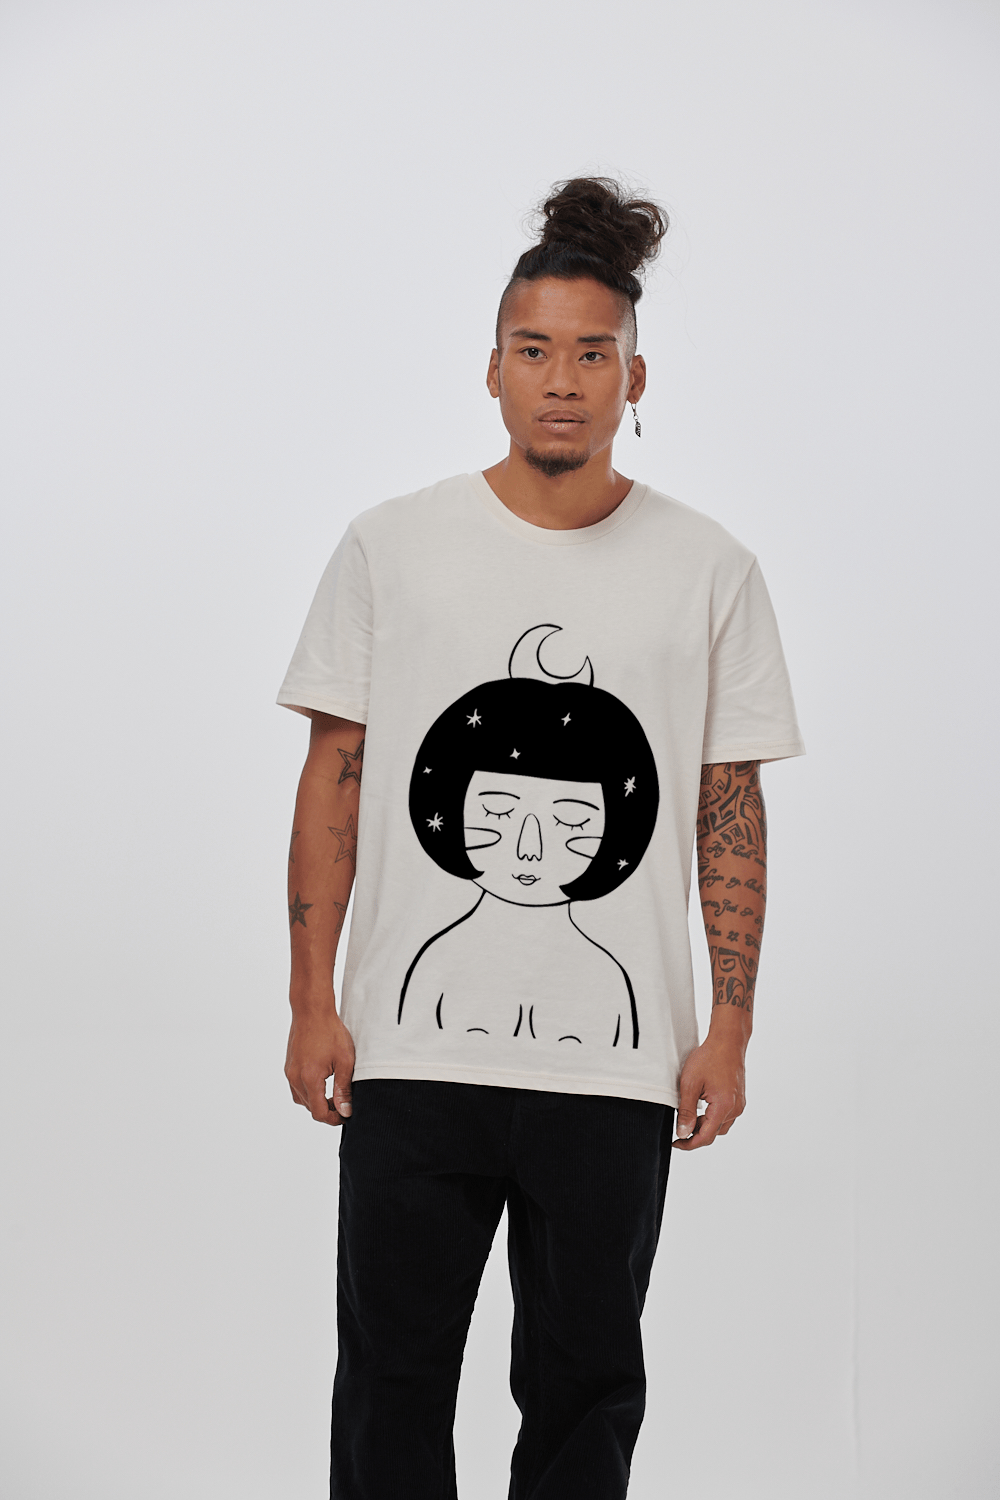 Lucy & Yak Tops 'Selene' Limited Edition Screen Printed T-Shirt By Rohanne Sanders